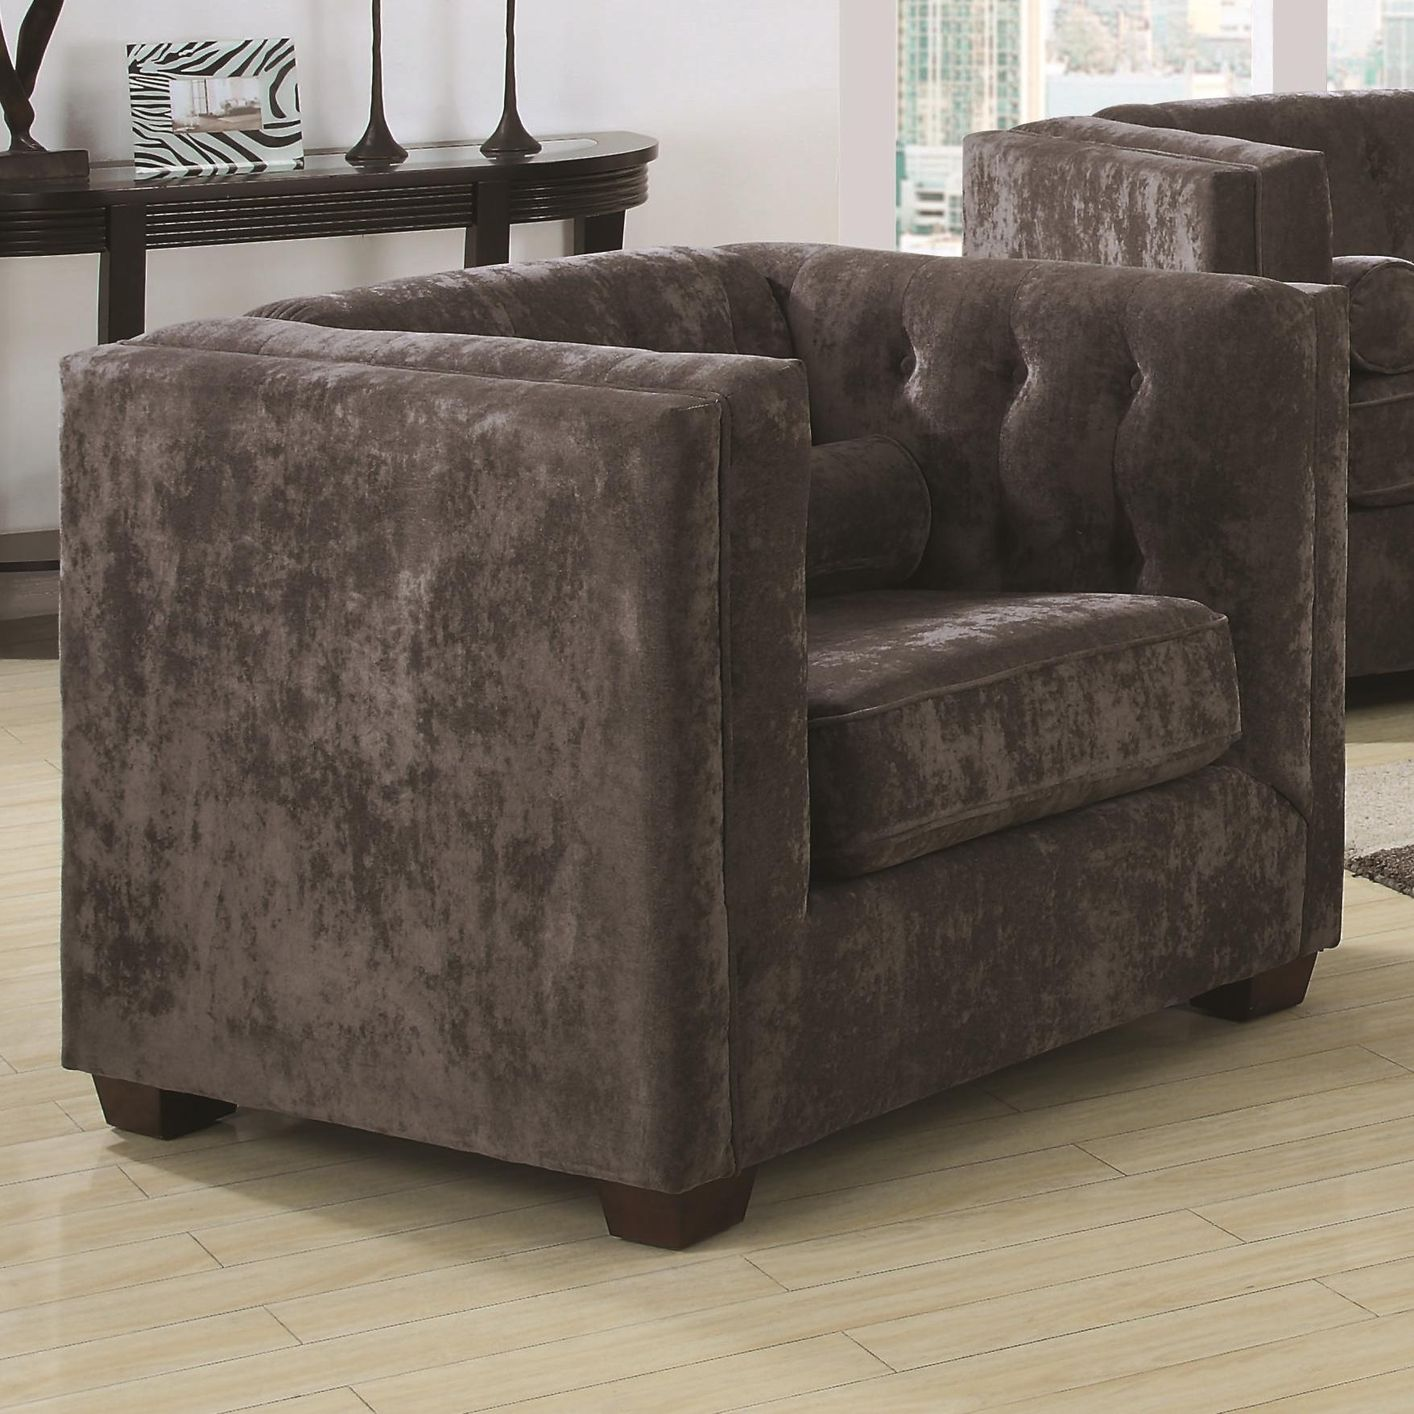 Alexis Grey Fabric Chair Steal A Sofa Furniture Outlet Los